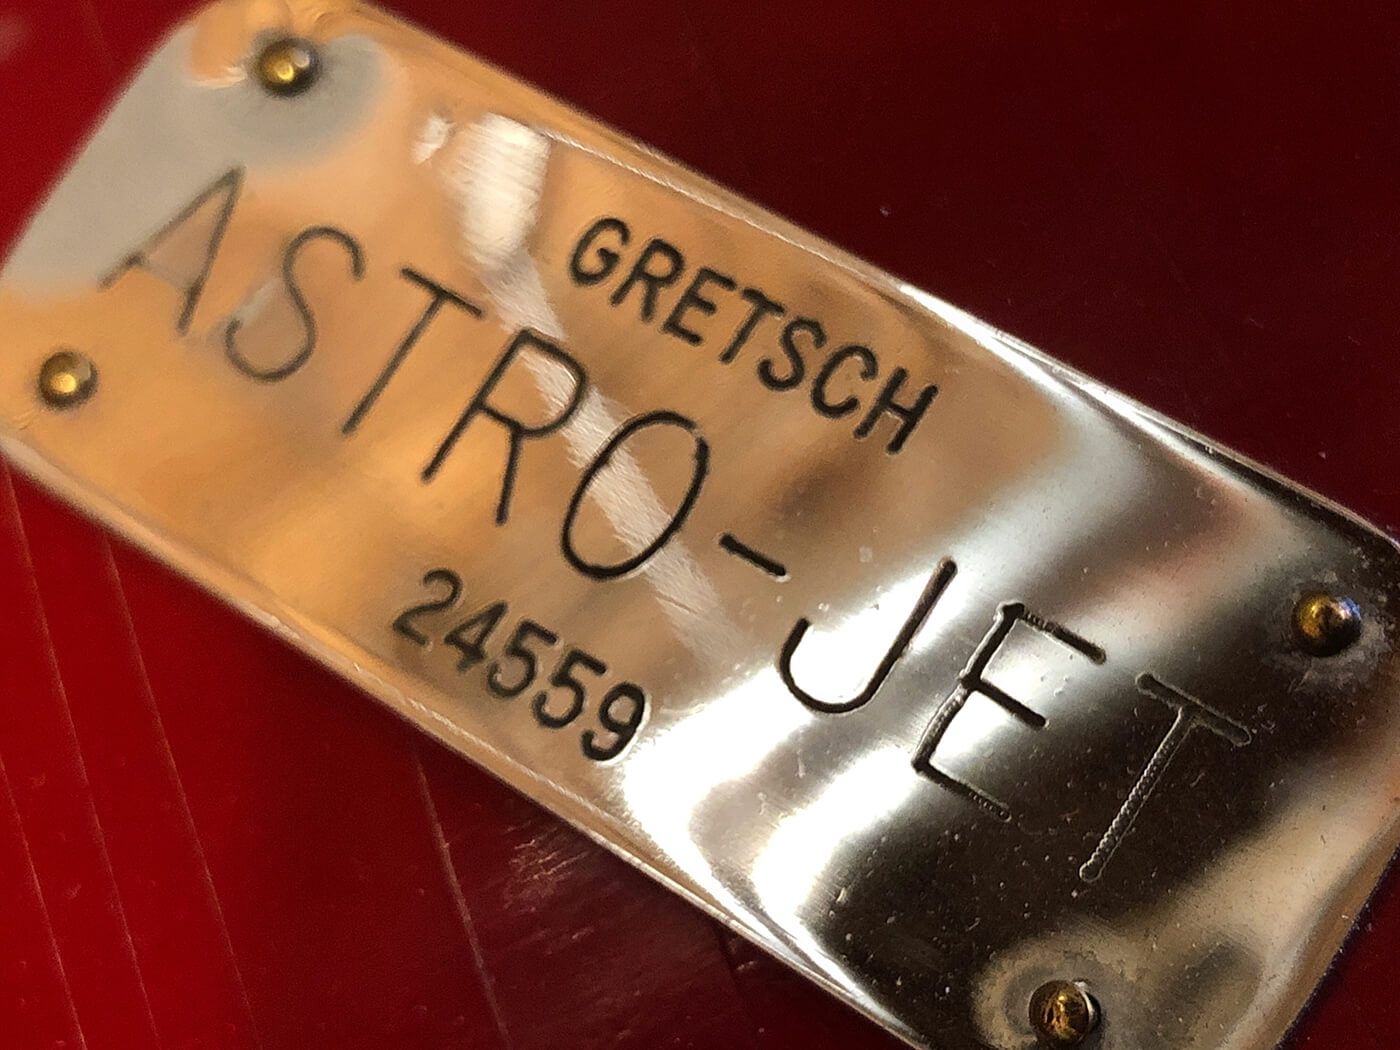 Veronica Mars Fact Check Gretsch Astro Jet